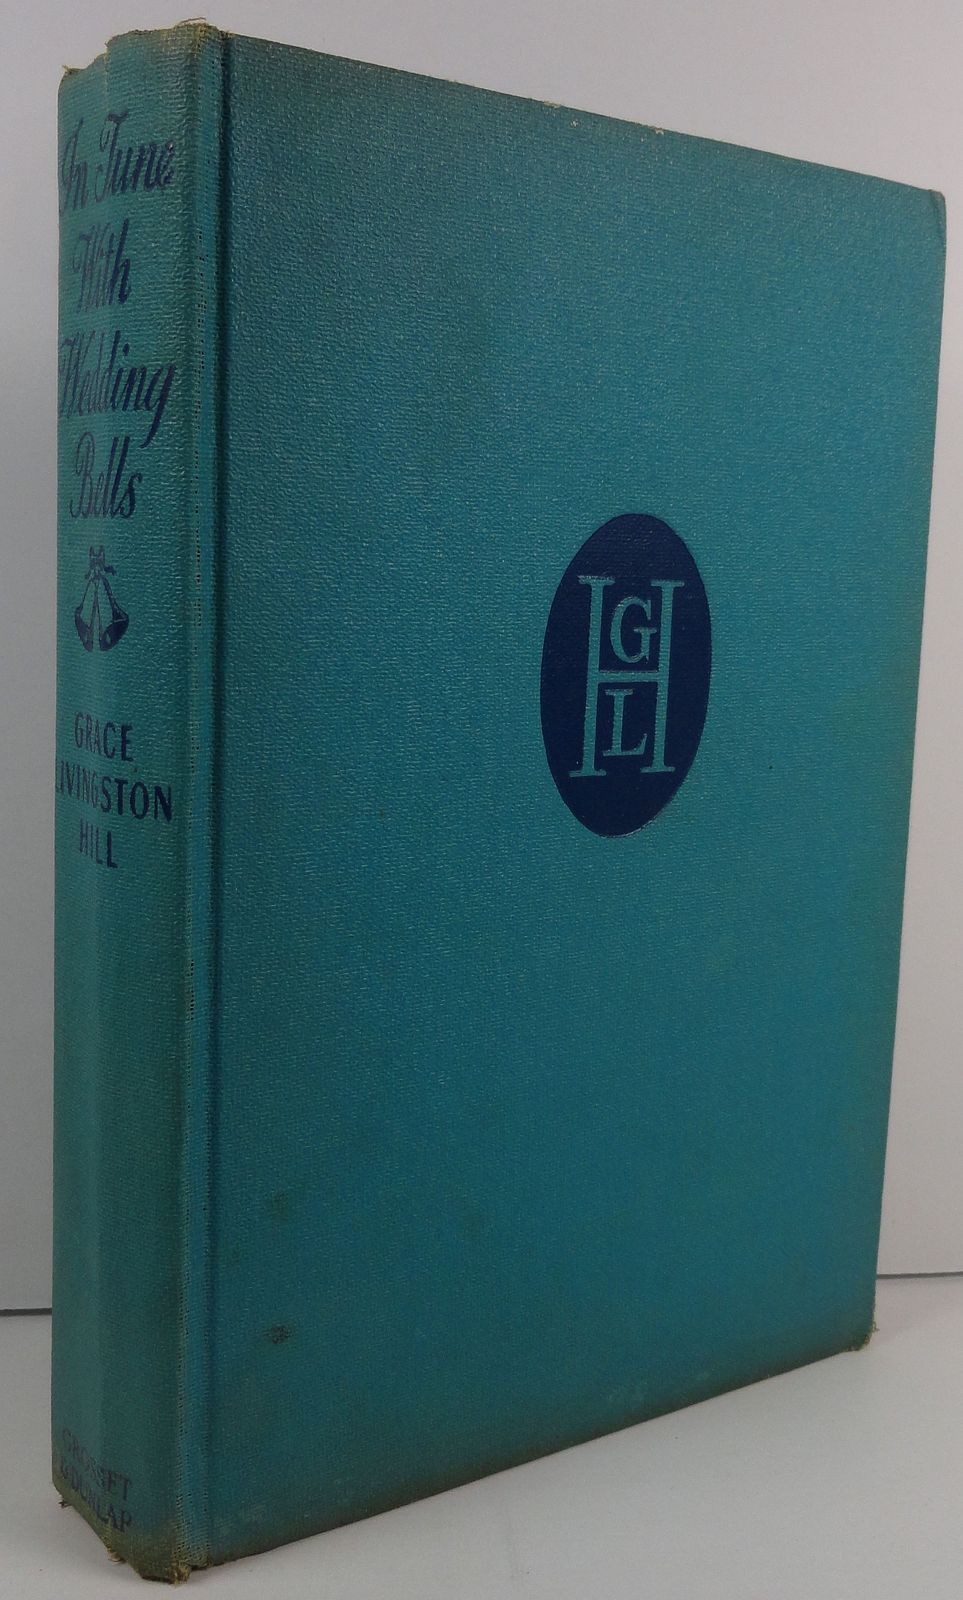 In Tune With Wedding Bells Grace Livingston Hill 1941 HC/DJ